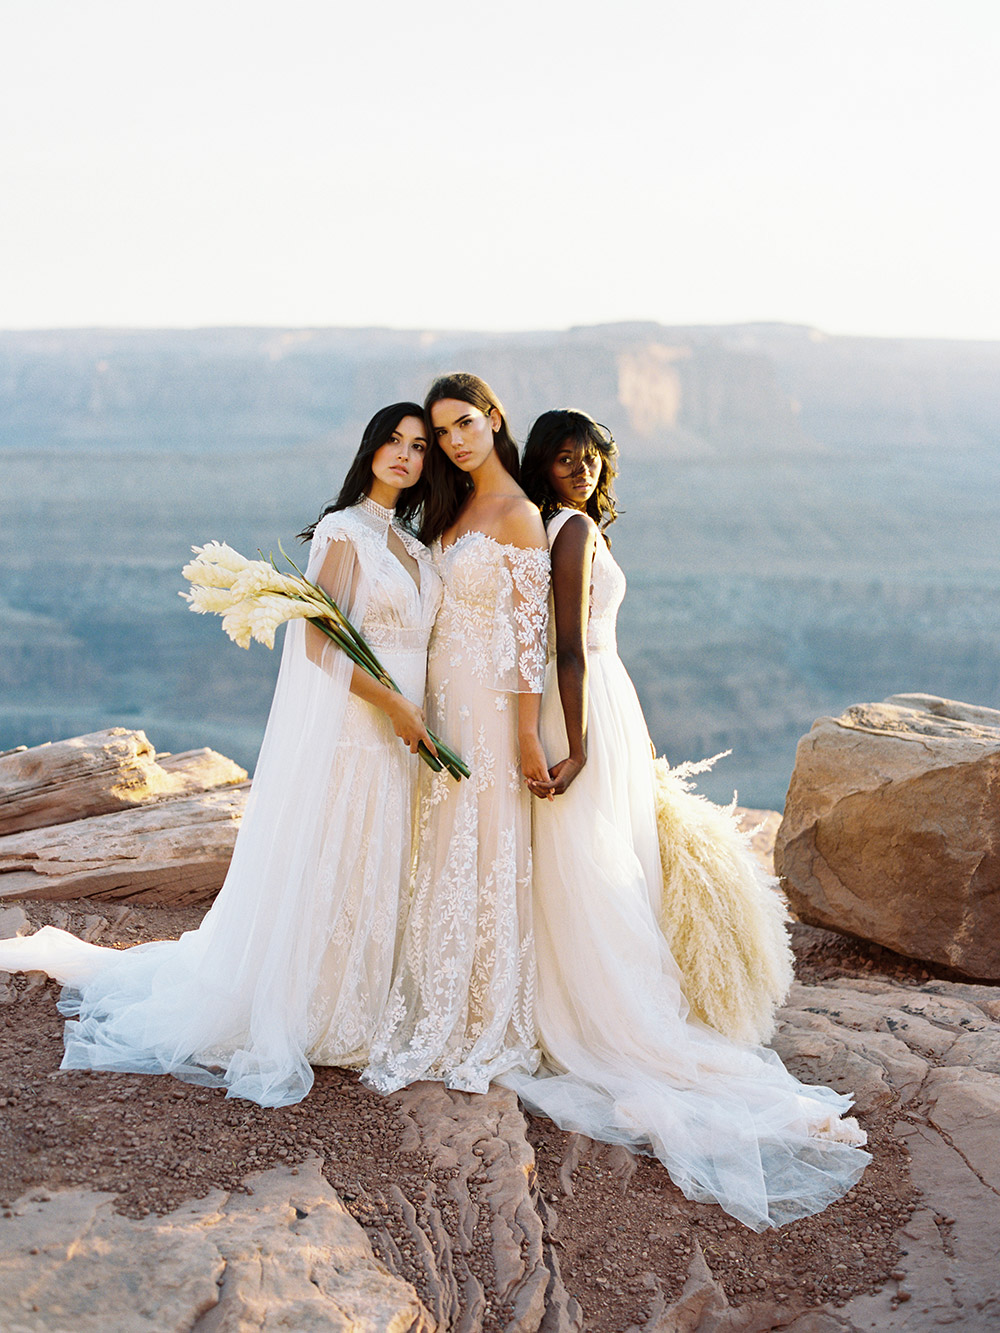 Wilderly Bride by Allure Bridals Spring 2018 Collection. www.theweddingnotebook.comWilderly Bride by Allure Bridals Spring 2018 Collection. www.theweddingnotebook.com